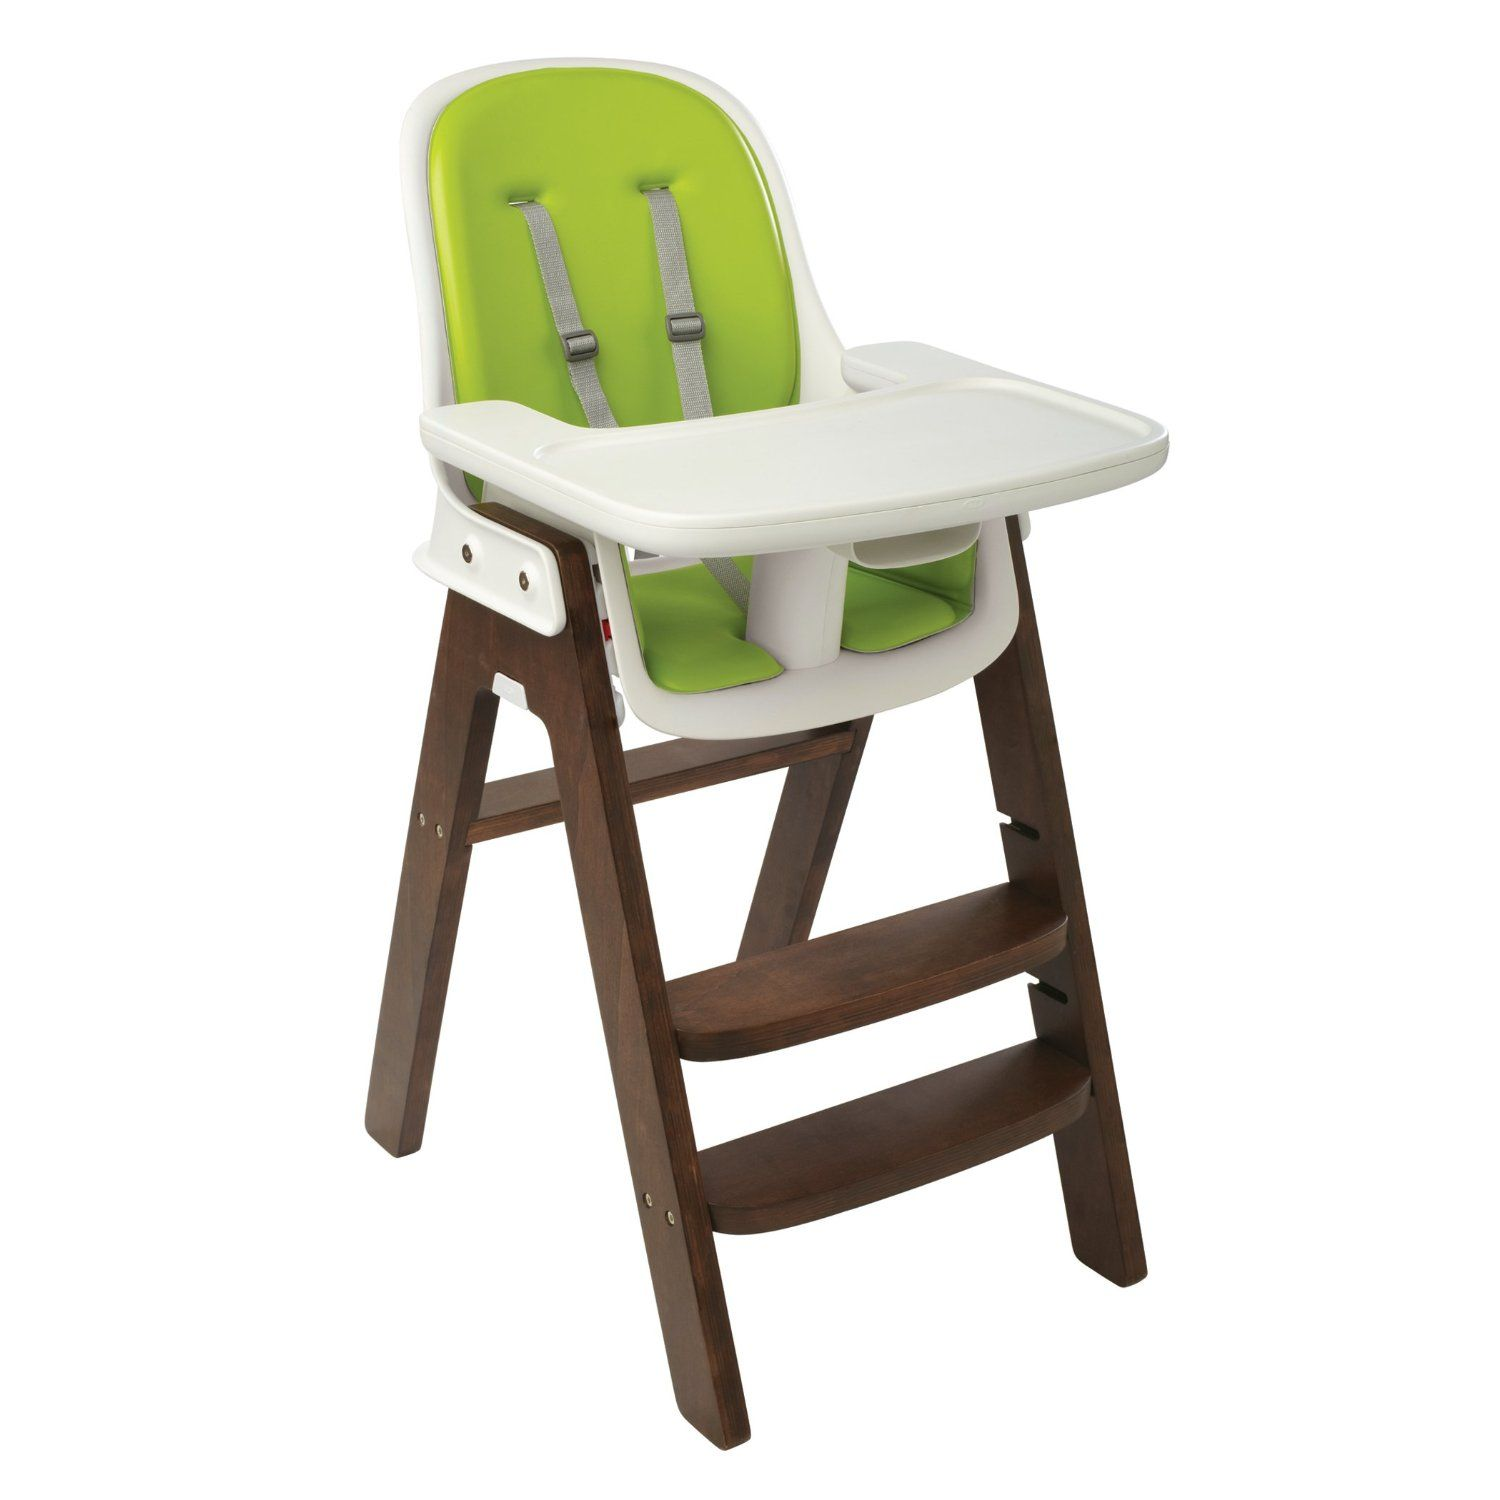 Oxo Tot Sprout High Chair Review